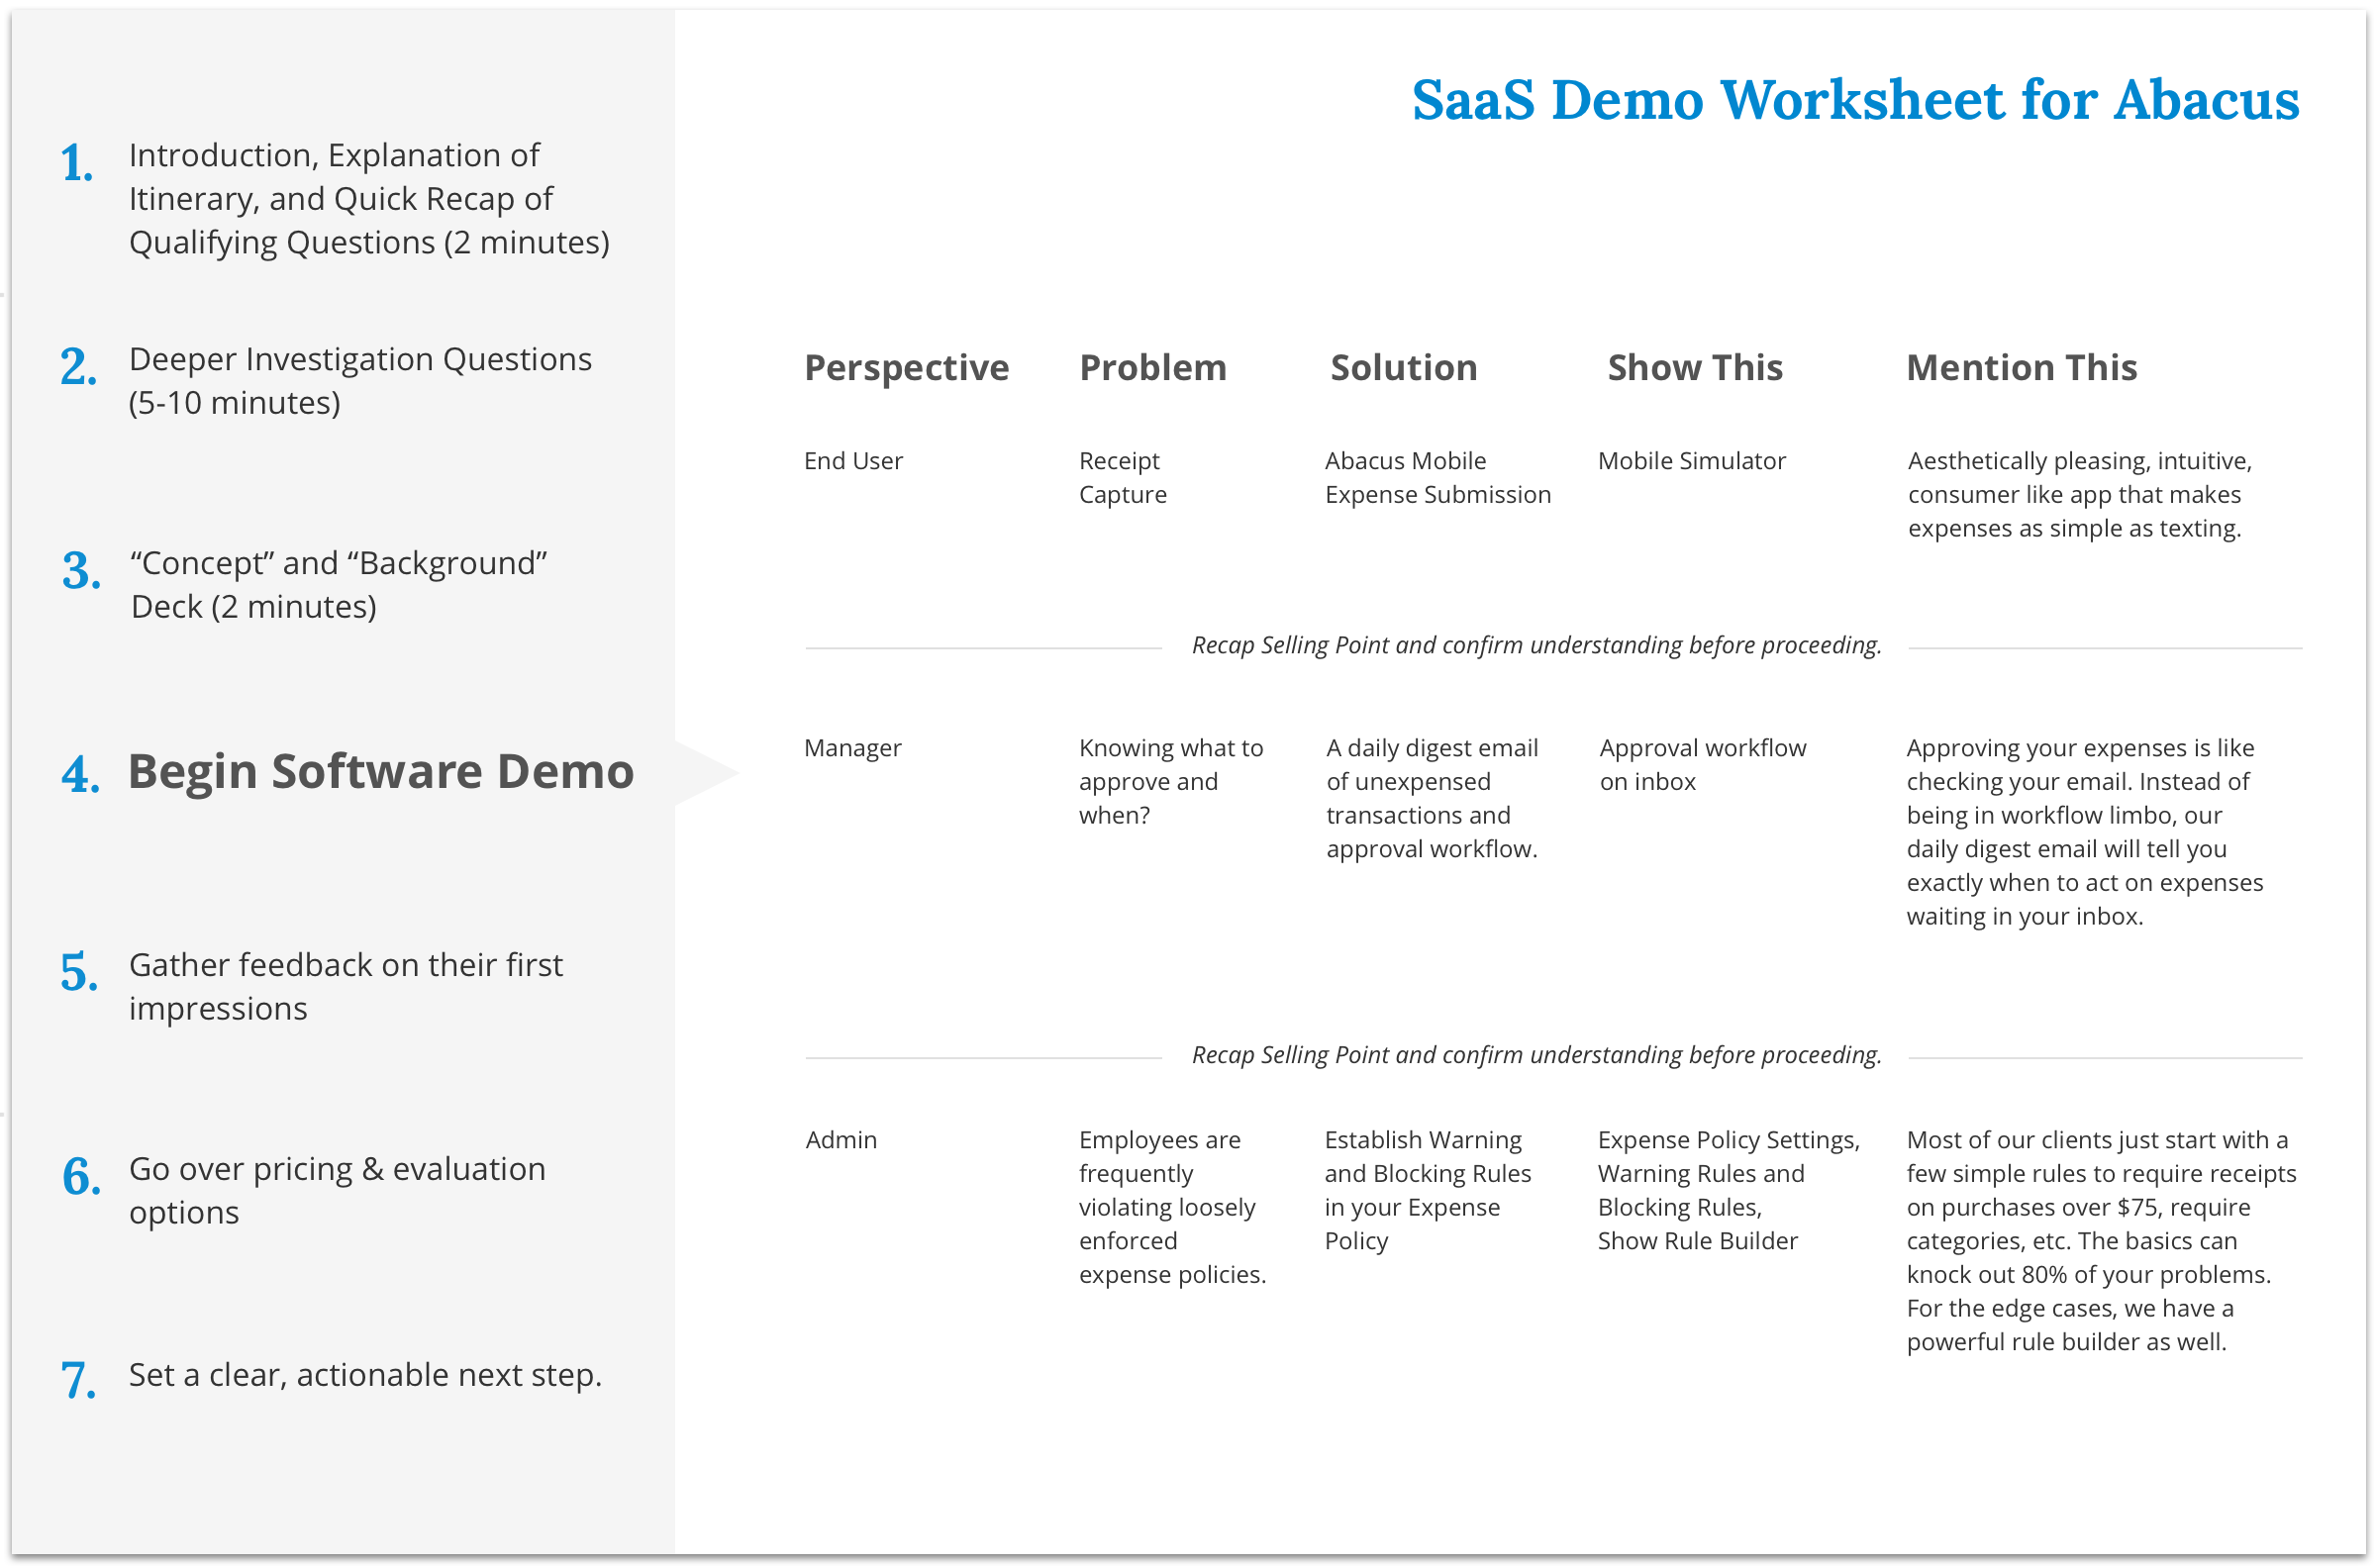 How to Create a Winning Worksheet for Your SaaS Demo : Abacus